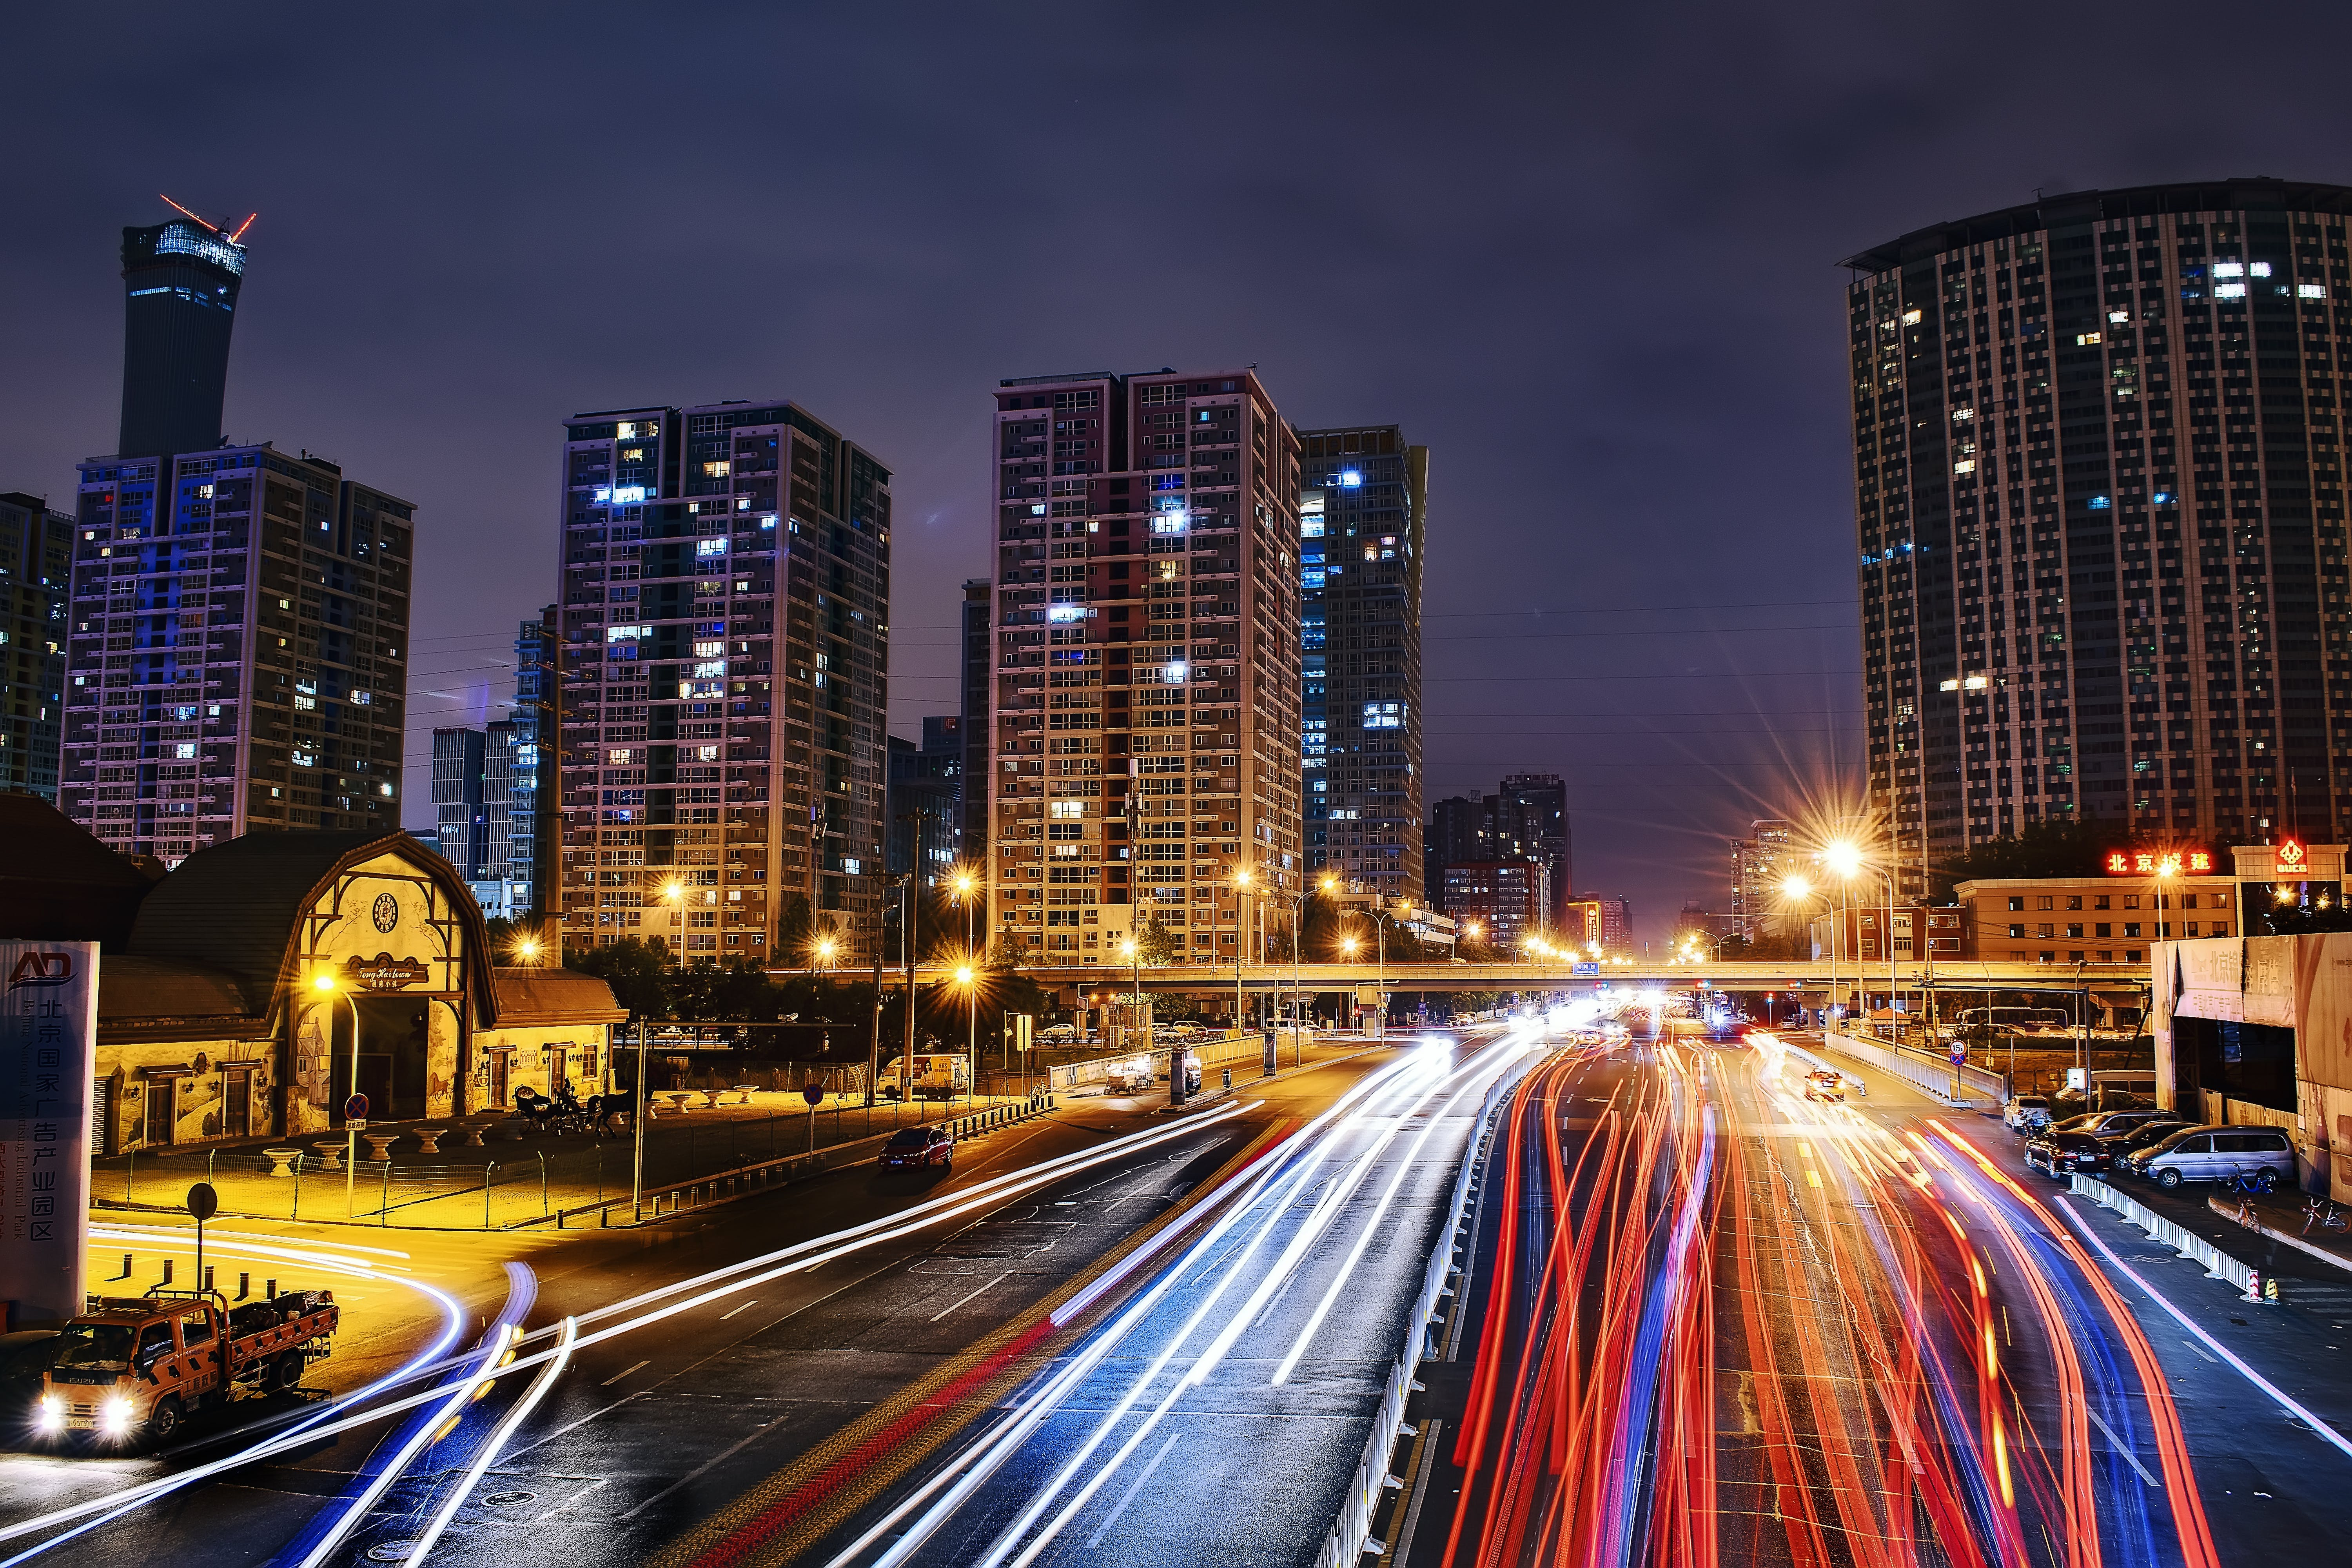 Time Lapse Photography of City Road at Nighttime